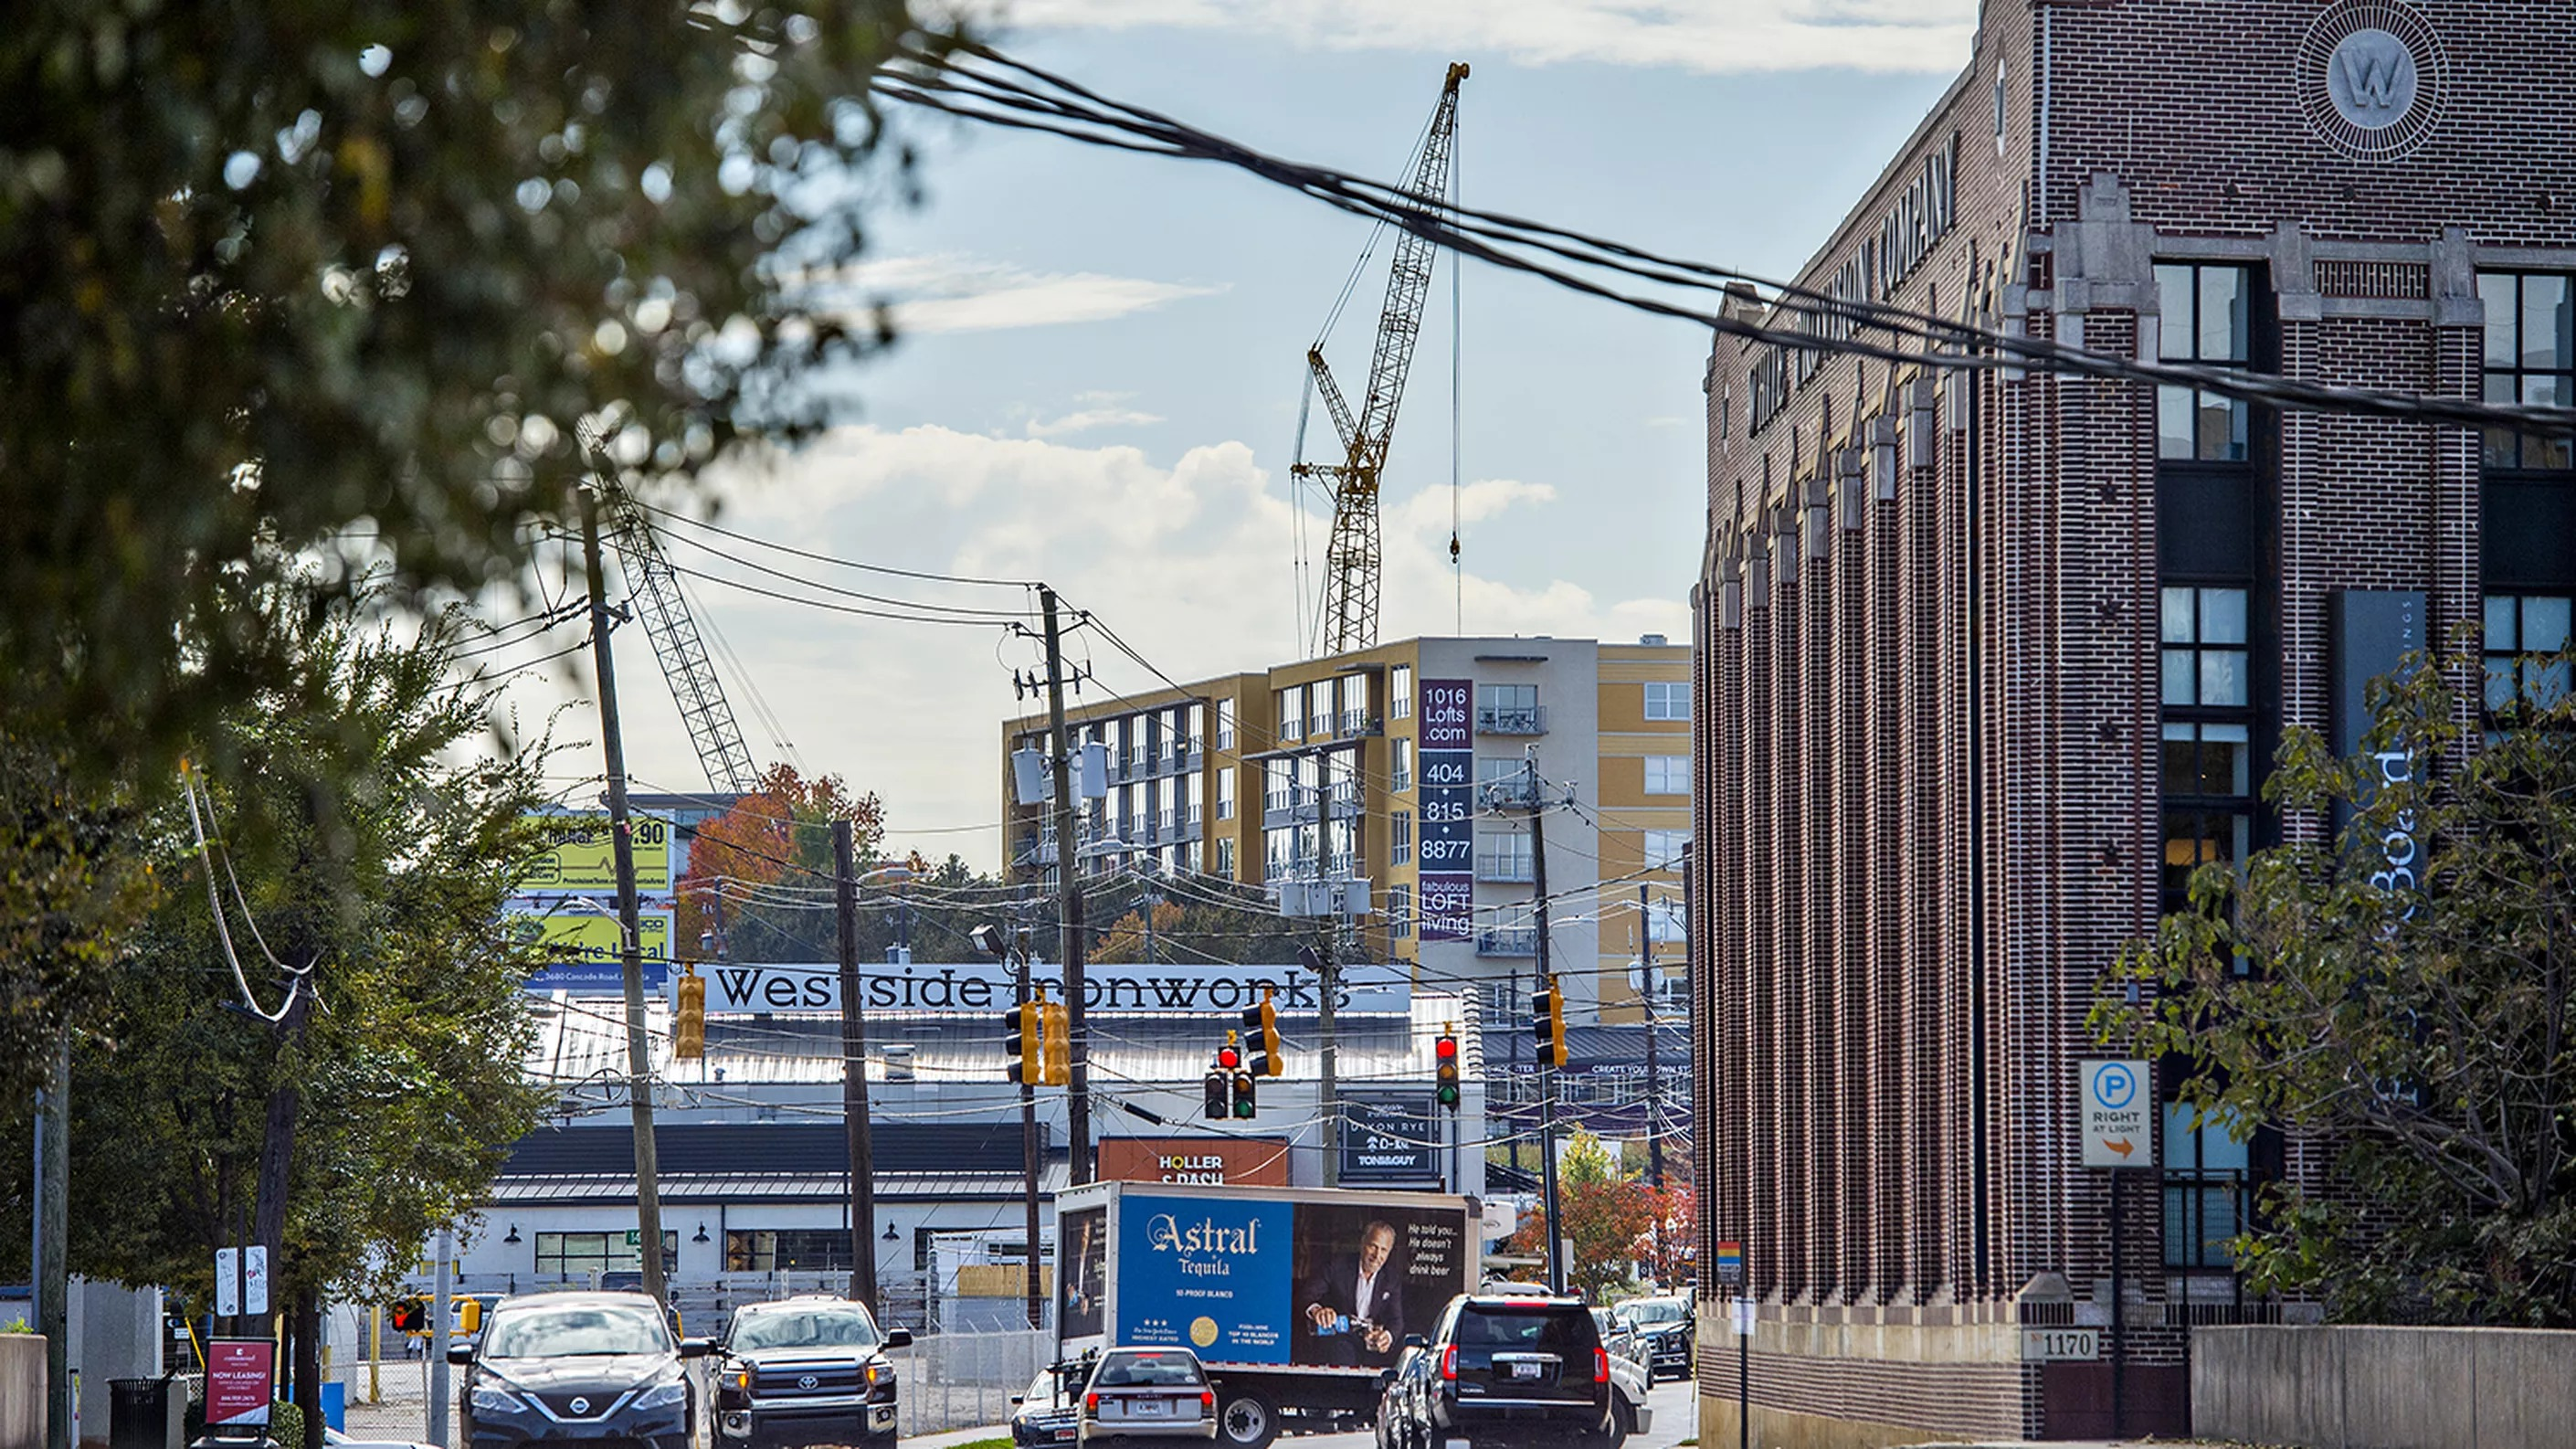 West Midtown residents worry a new concrete plant will hurt environment, snarl traffic